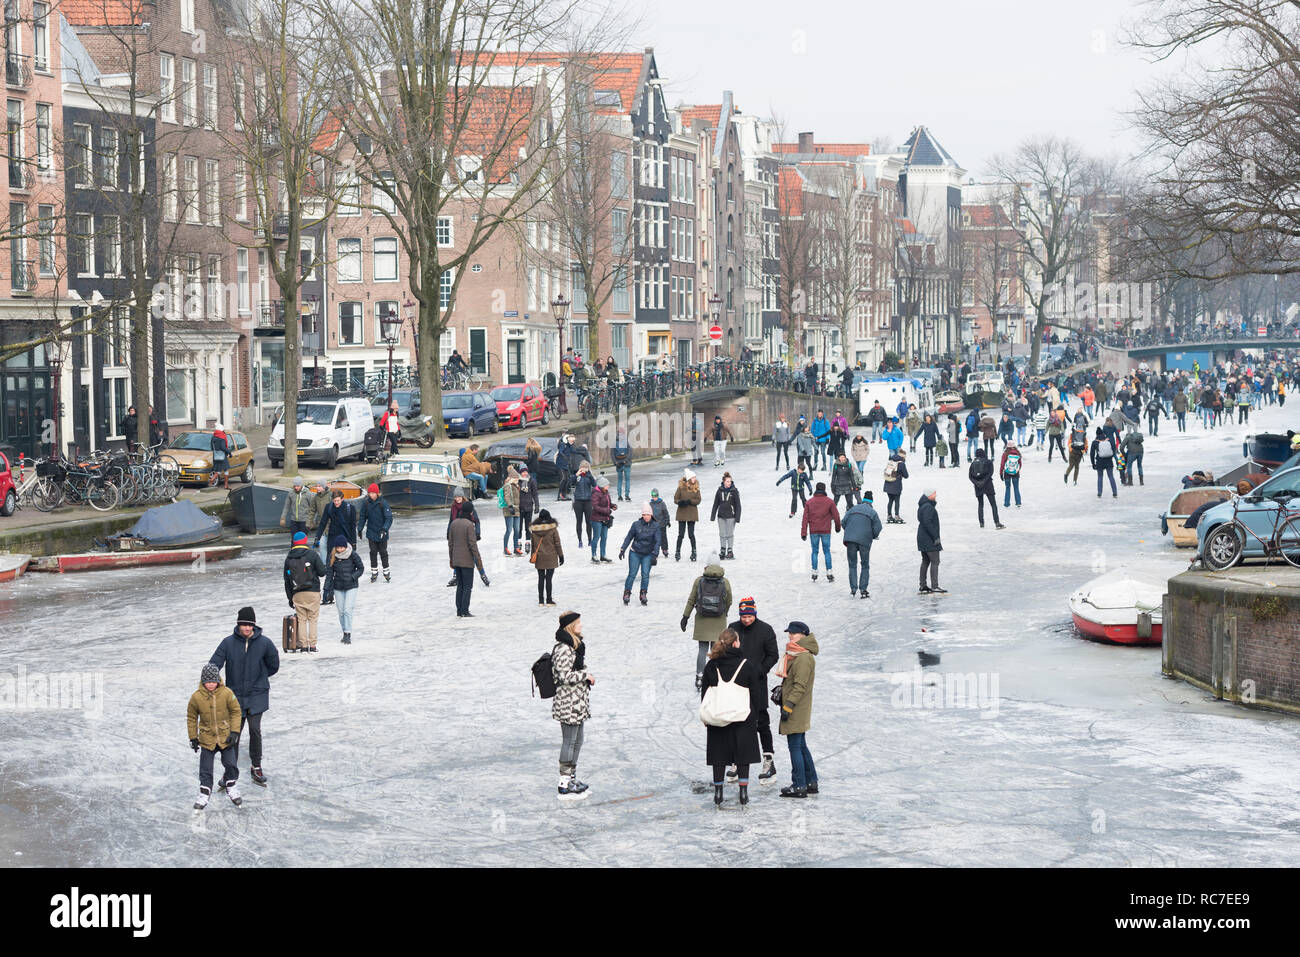 Ice skating people on frozen canal Prinsengracht, Amsterdam, The Netherlands. Stock Photo